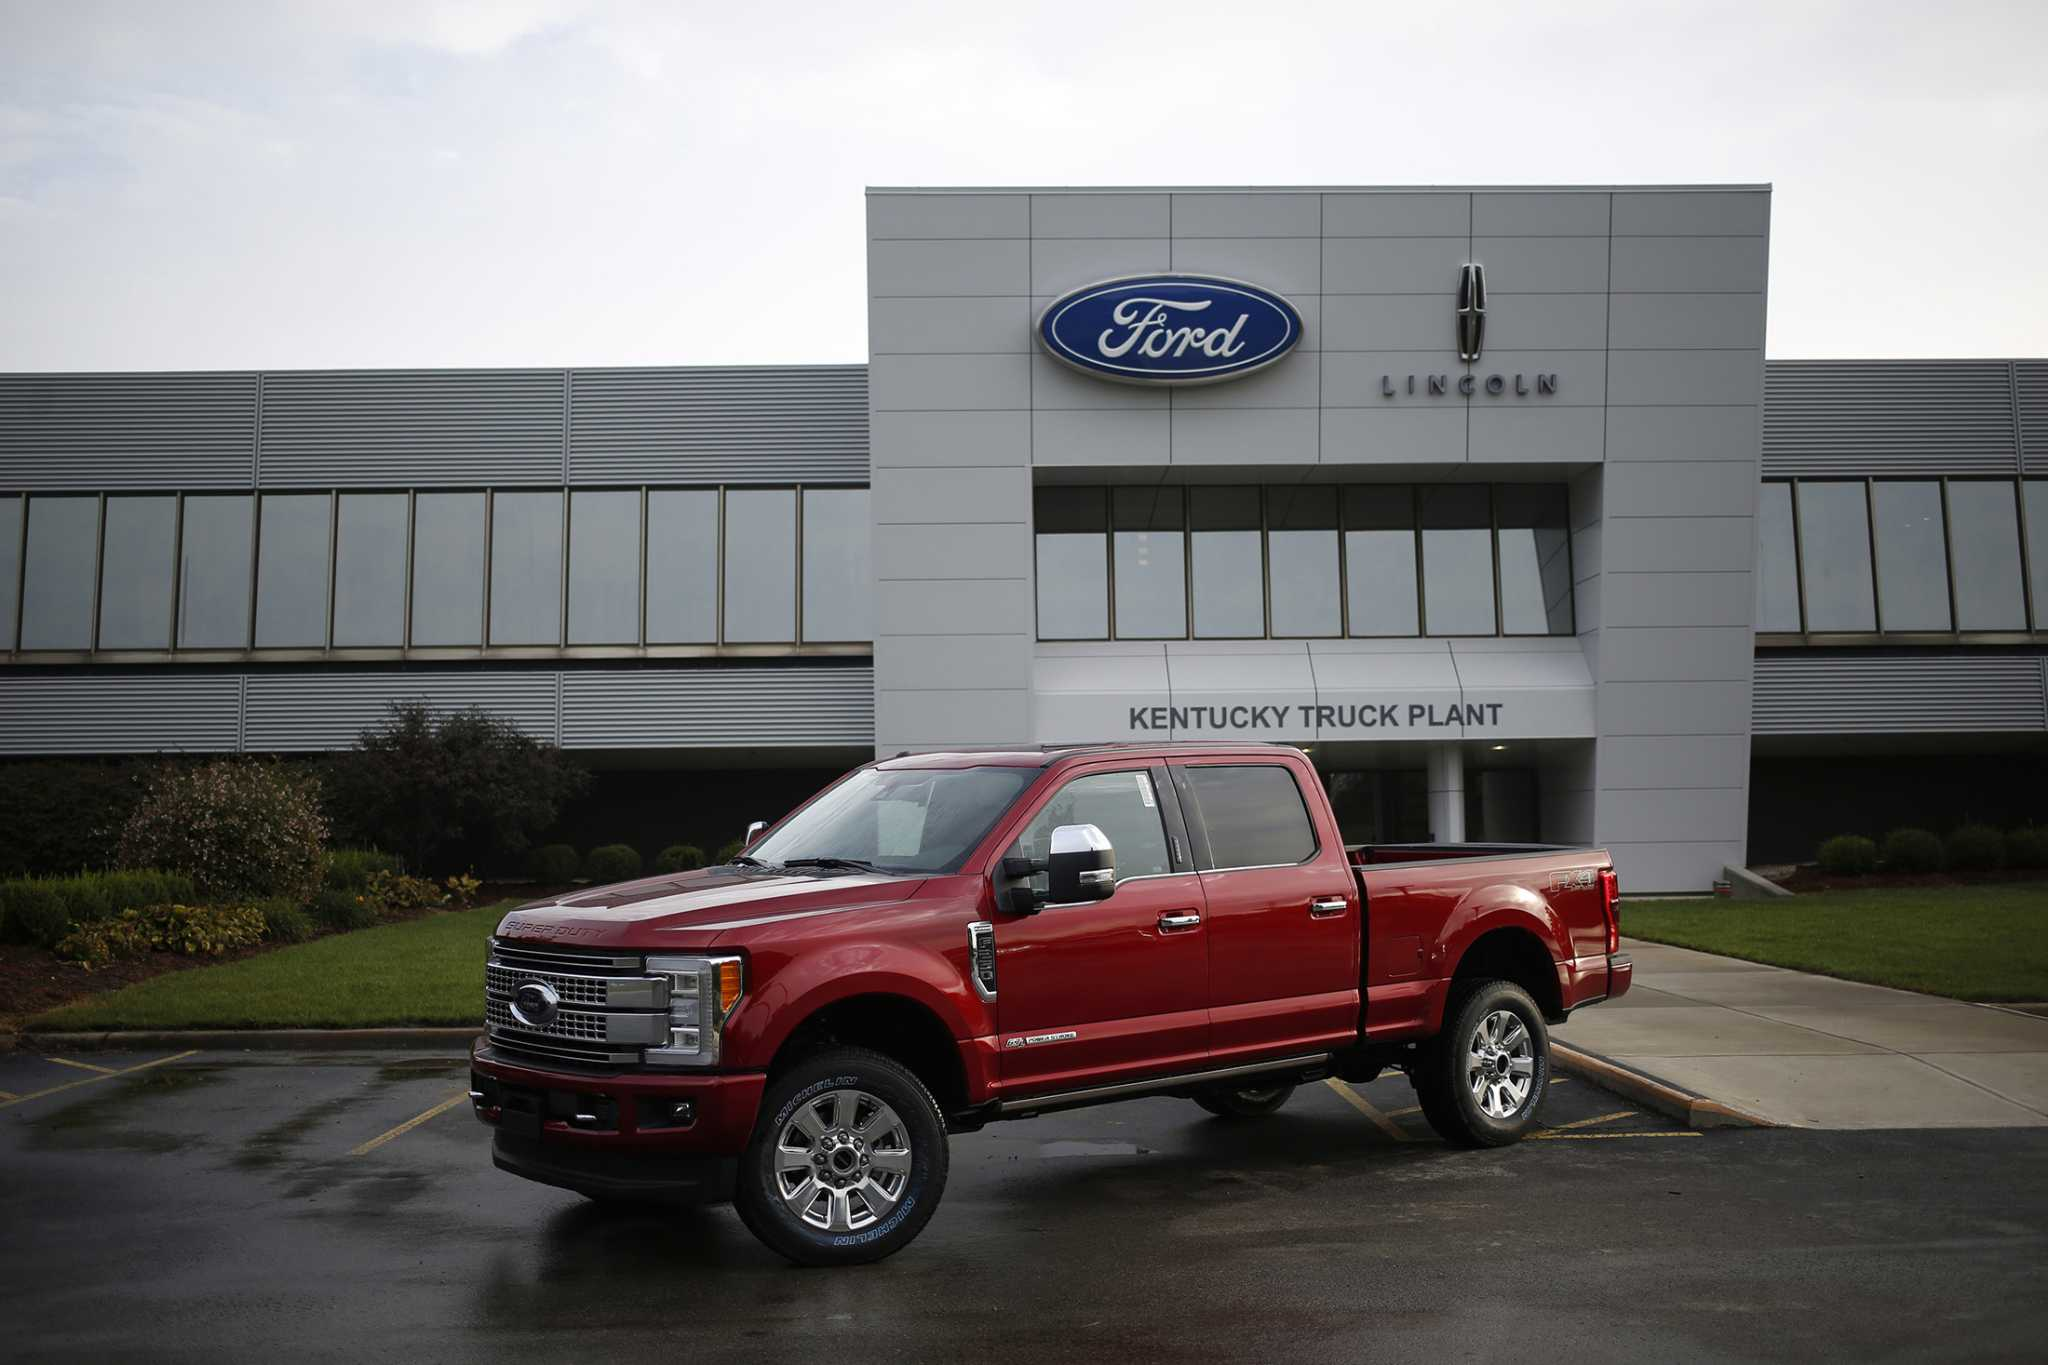 Ford sued by truck owners claiming sel engines were rigged SFGate